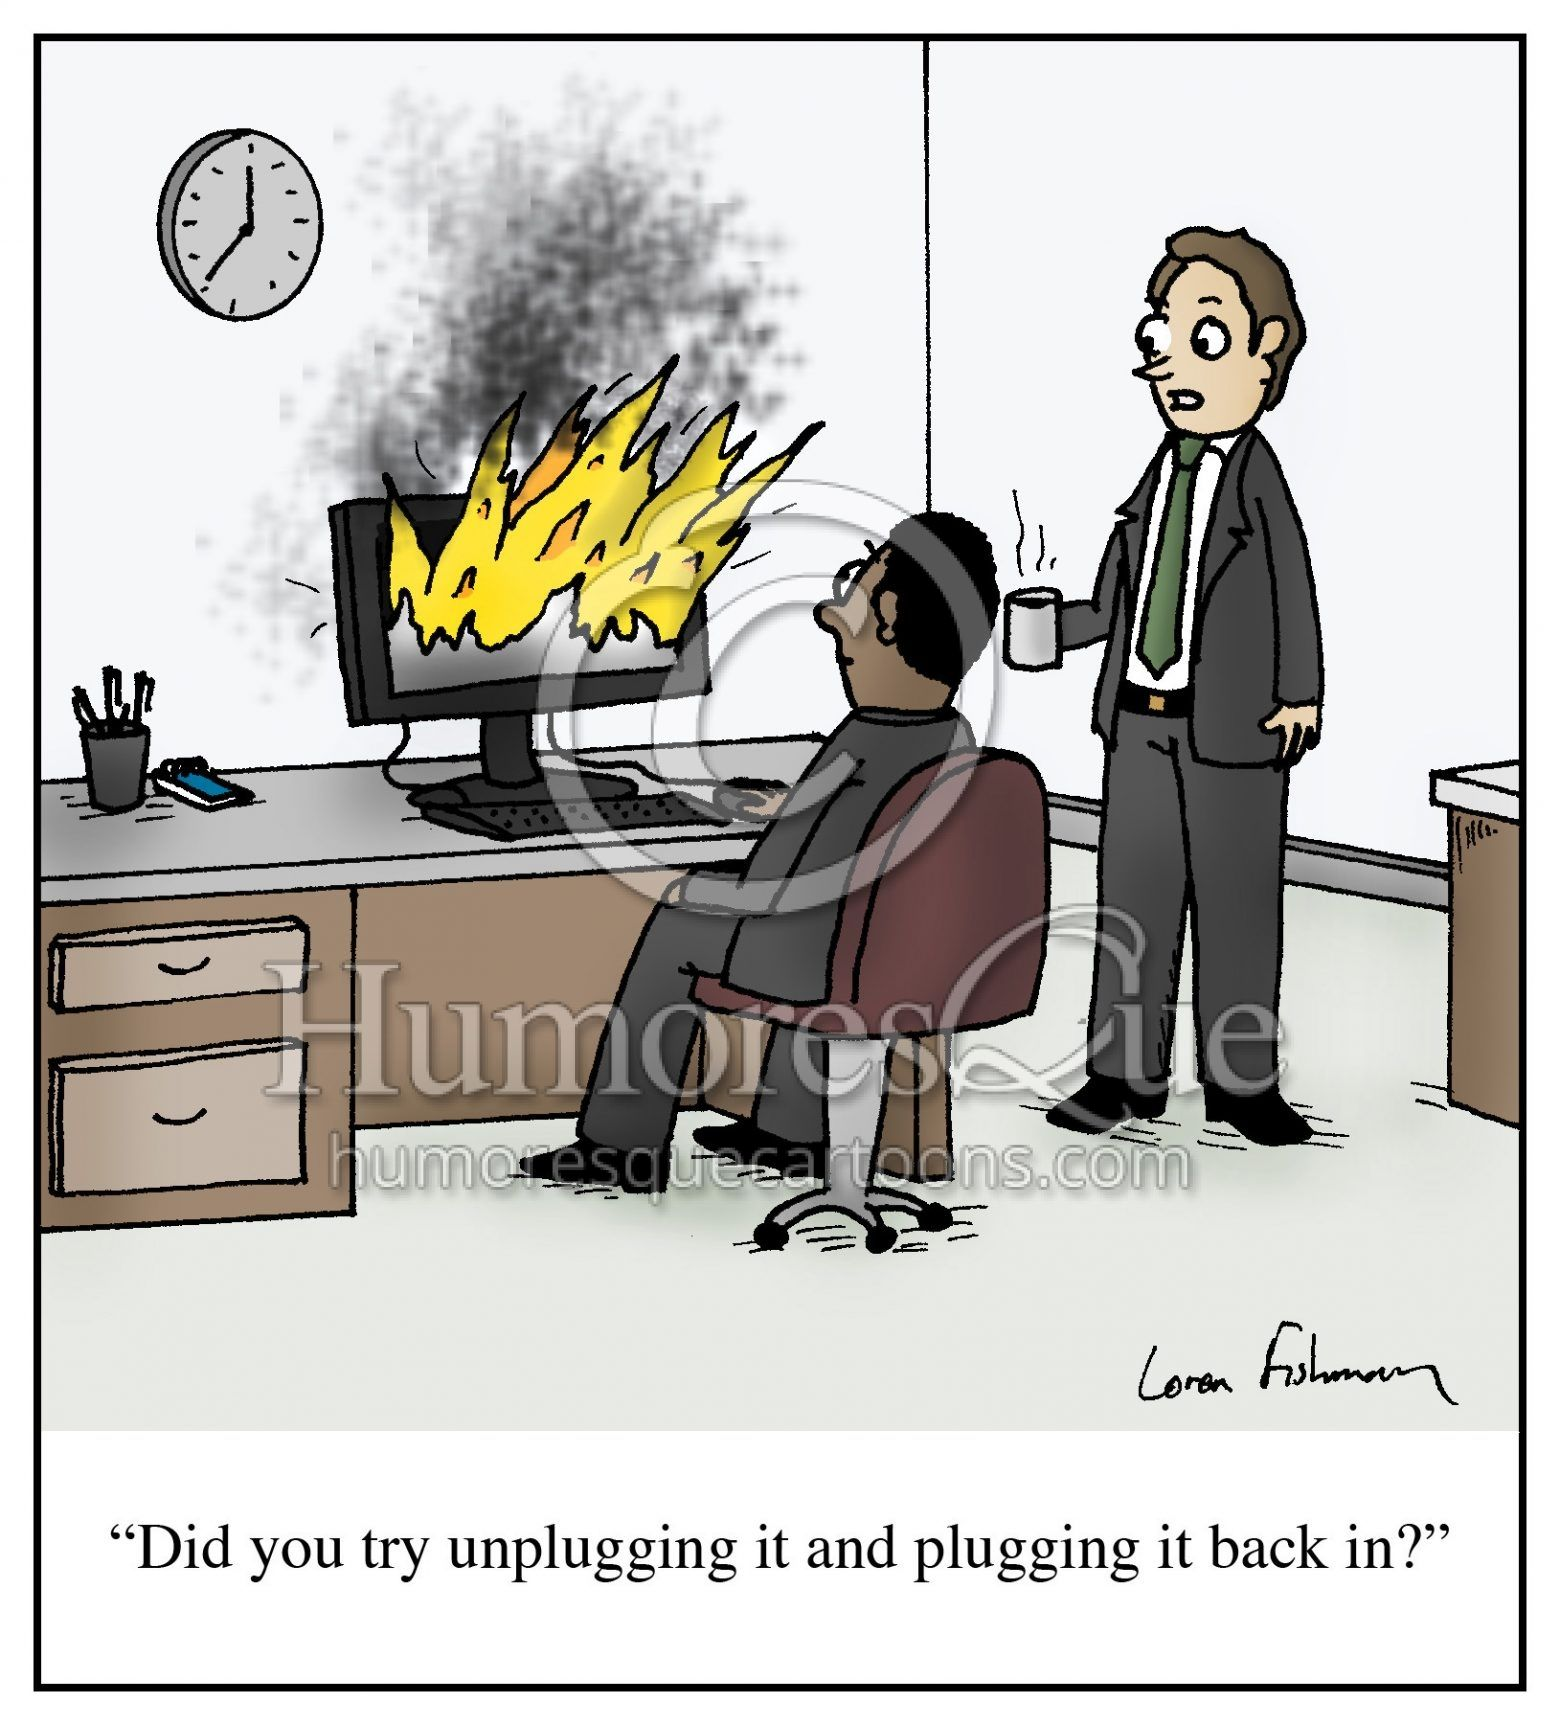 Cartoon Did You Try Unplugging It And Plugging It Back In Humoresque Cartoons Tech Humor Computer Humor Funny Cartoons